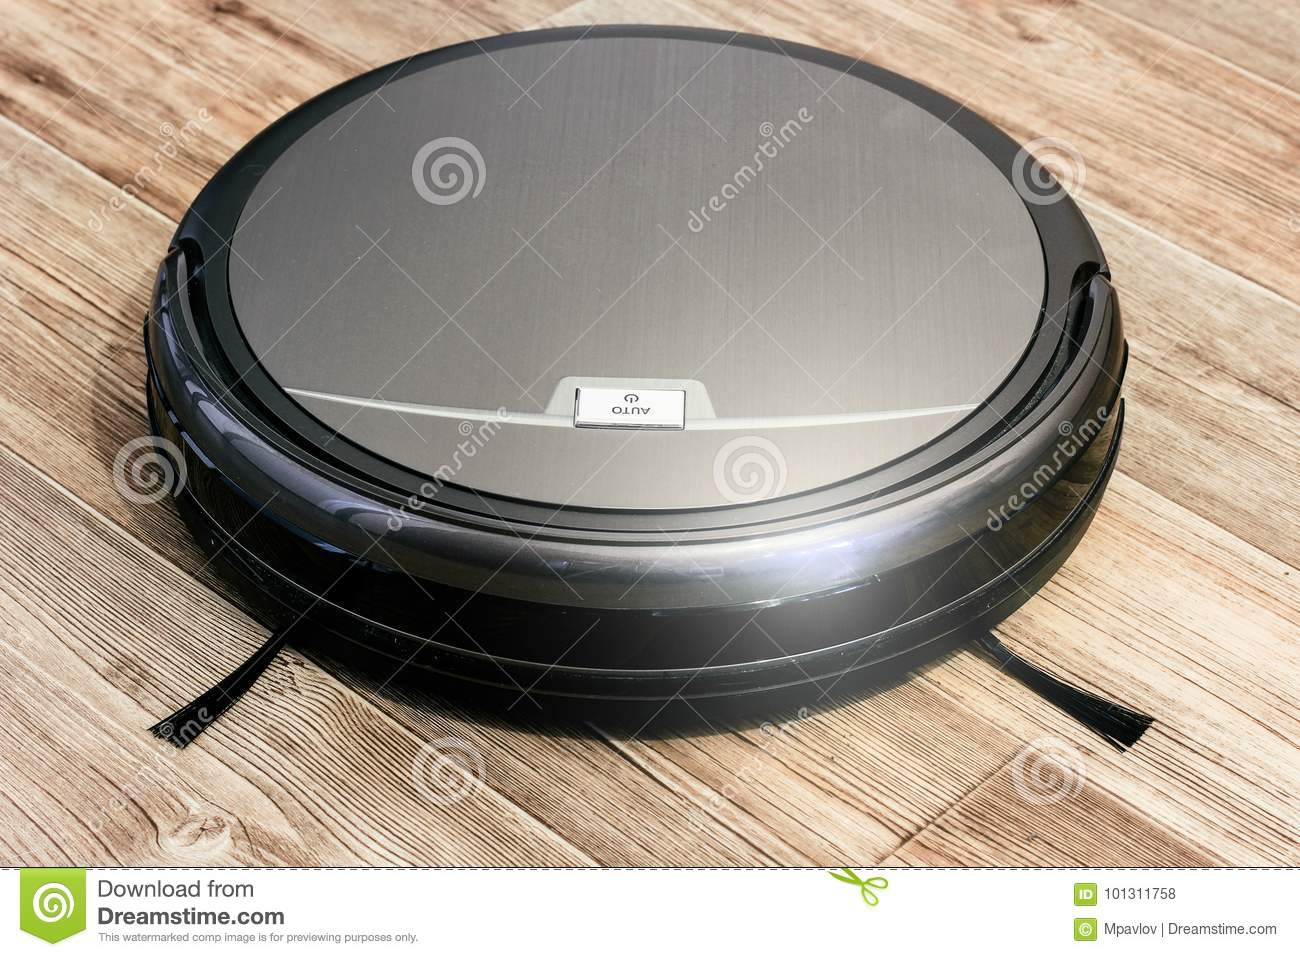 Robot vacuum cleaner for an apartment: how to choose, review, reviews 42